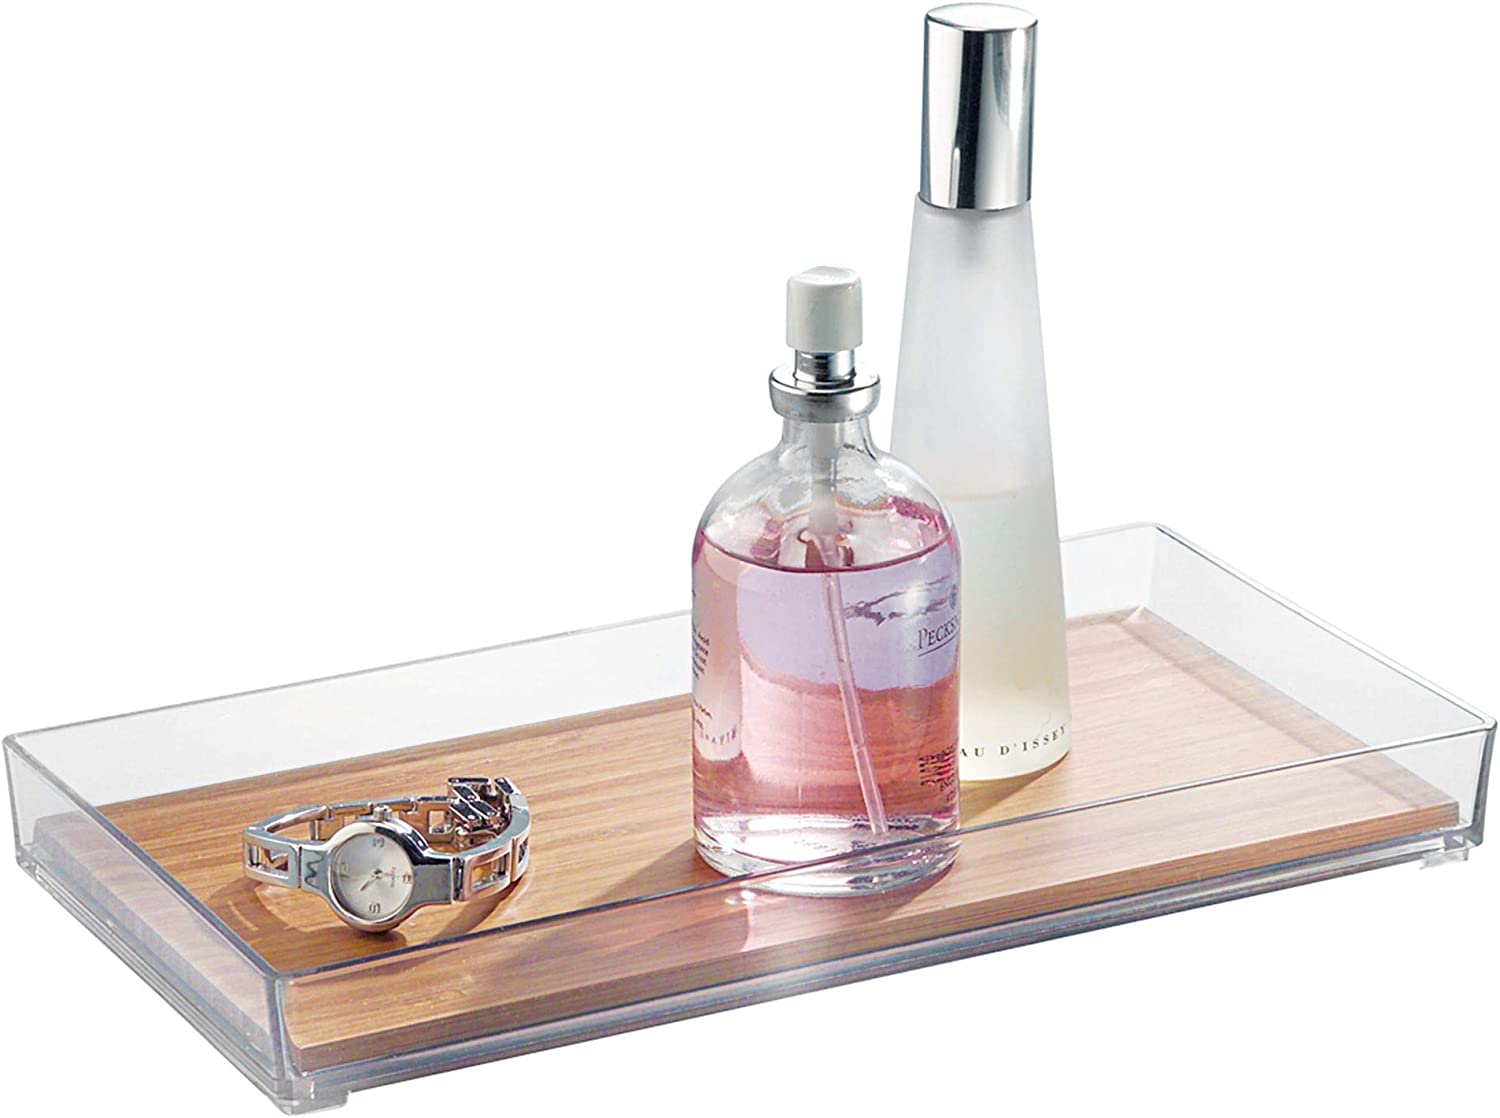 """iDesign Formbu Bamboo Vanity Tray, Guest Towel Board for Cosmetics, Makeup, Jewelry, Keys, Bathroom, Kitchen, Office, Countertops, Storage Organization, 5.2"""" x 10.3"""" x 1.1"""", Clear and Natural Wood"""